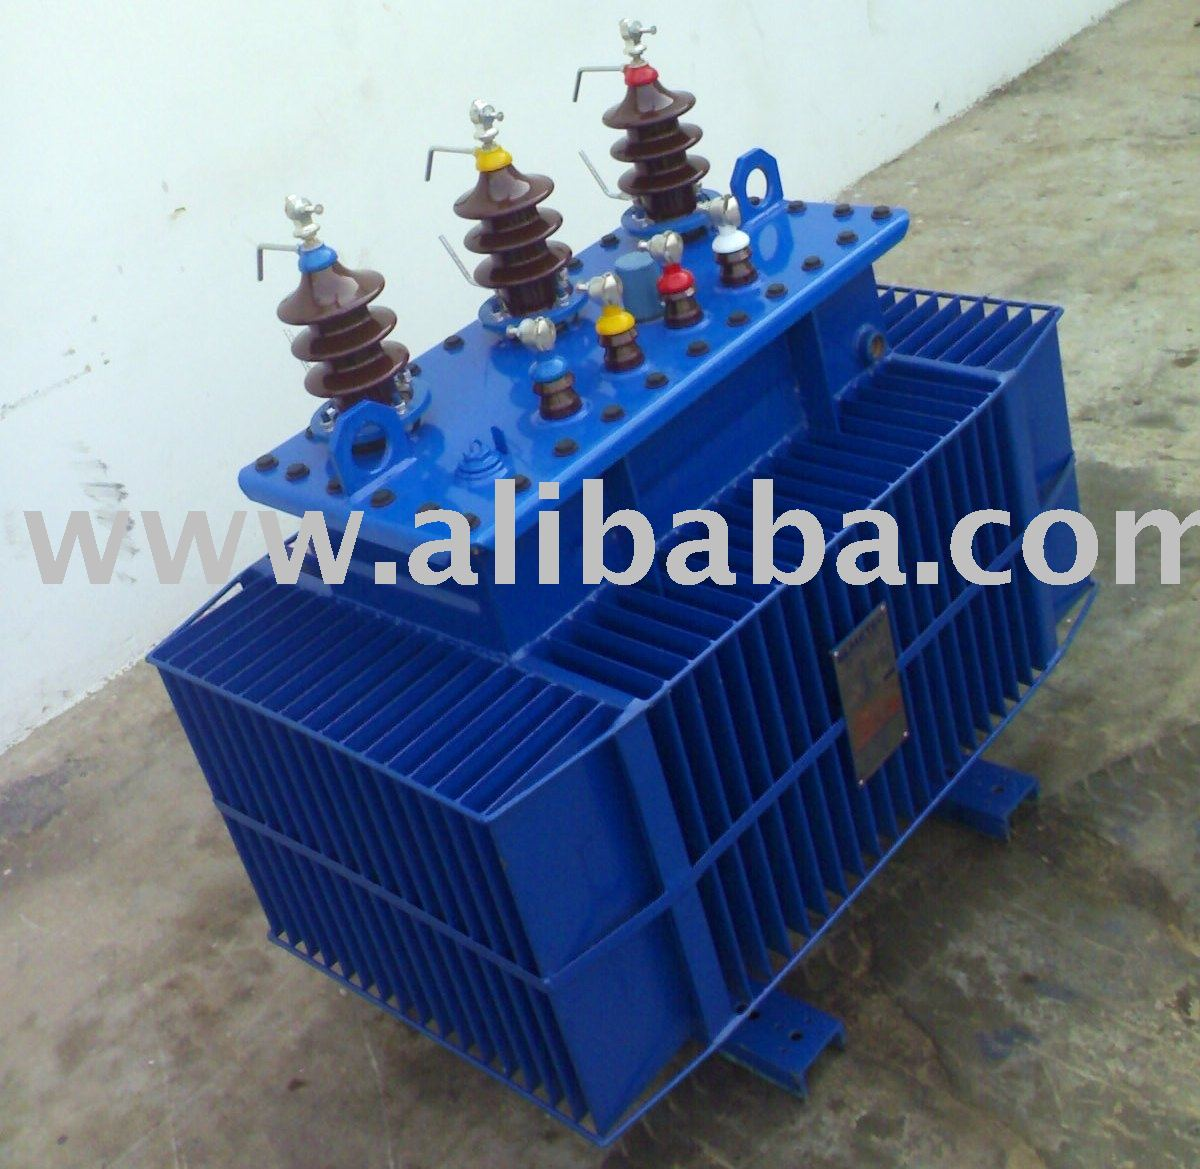 Distribution and Power Transformer